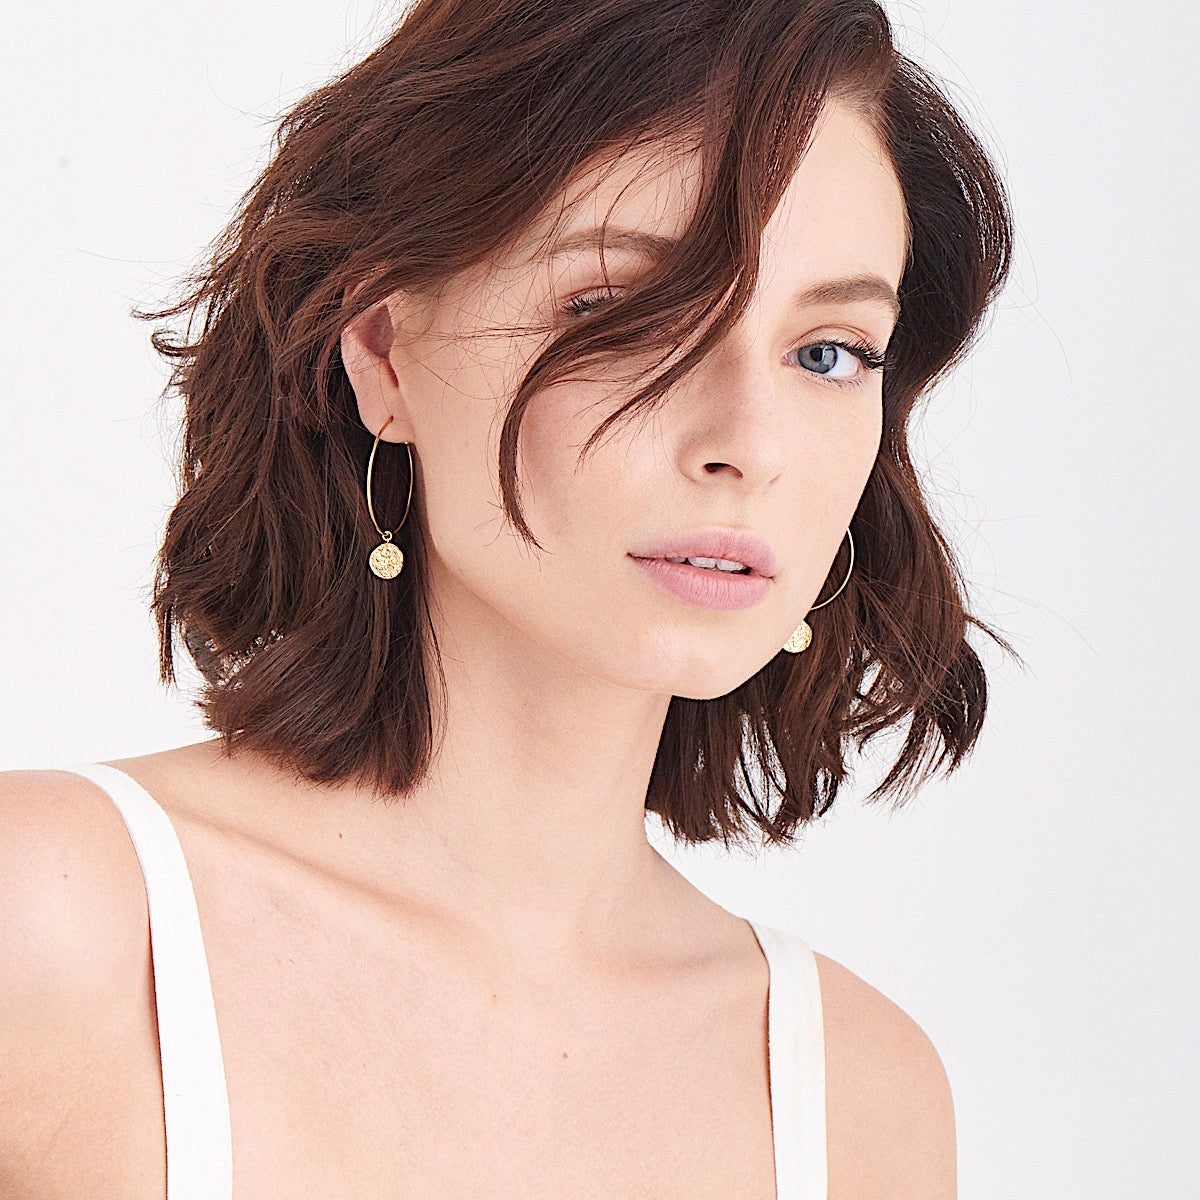 Ania Haie Gold Boreas Hoop Earrings Model Shot | More Than Just at Gift | Narborough Hall